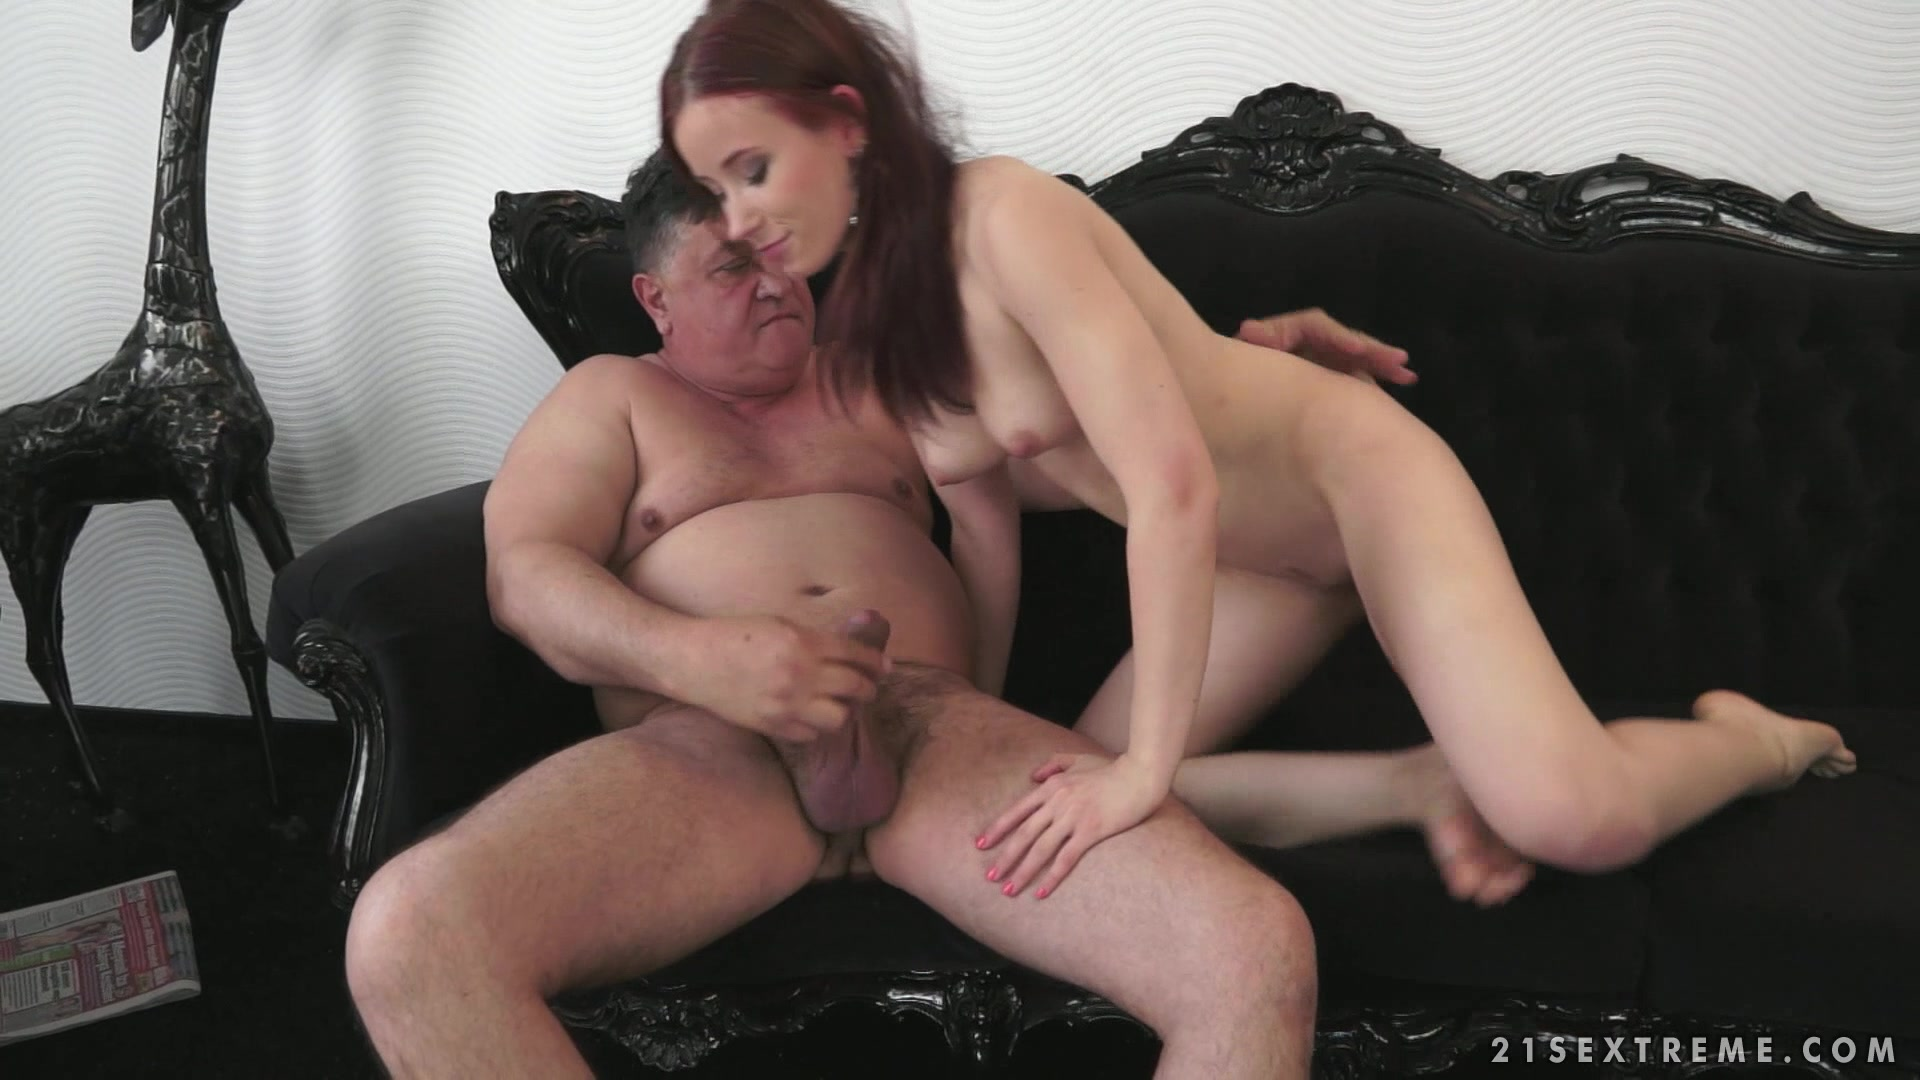 A nasty hottie fucking join